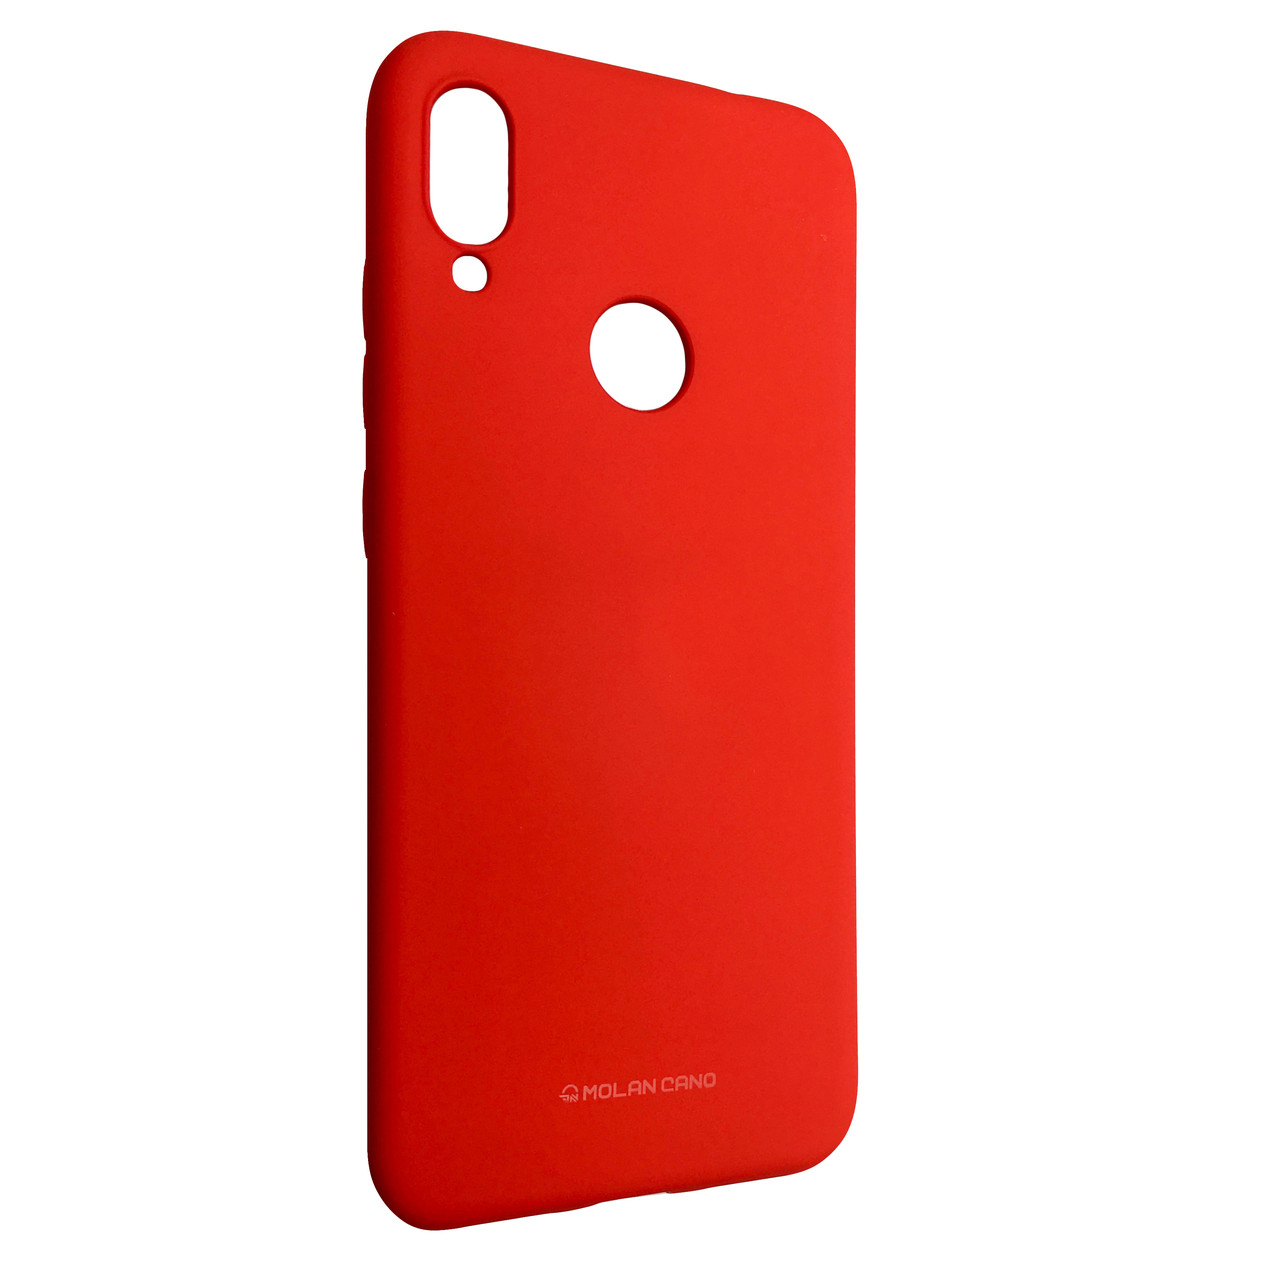 Чехол Hana Molan Cano Xiaomi Redmi 7 (red)